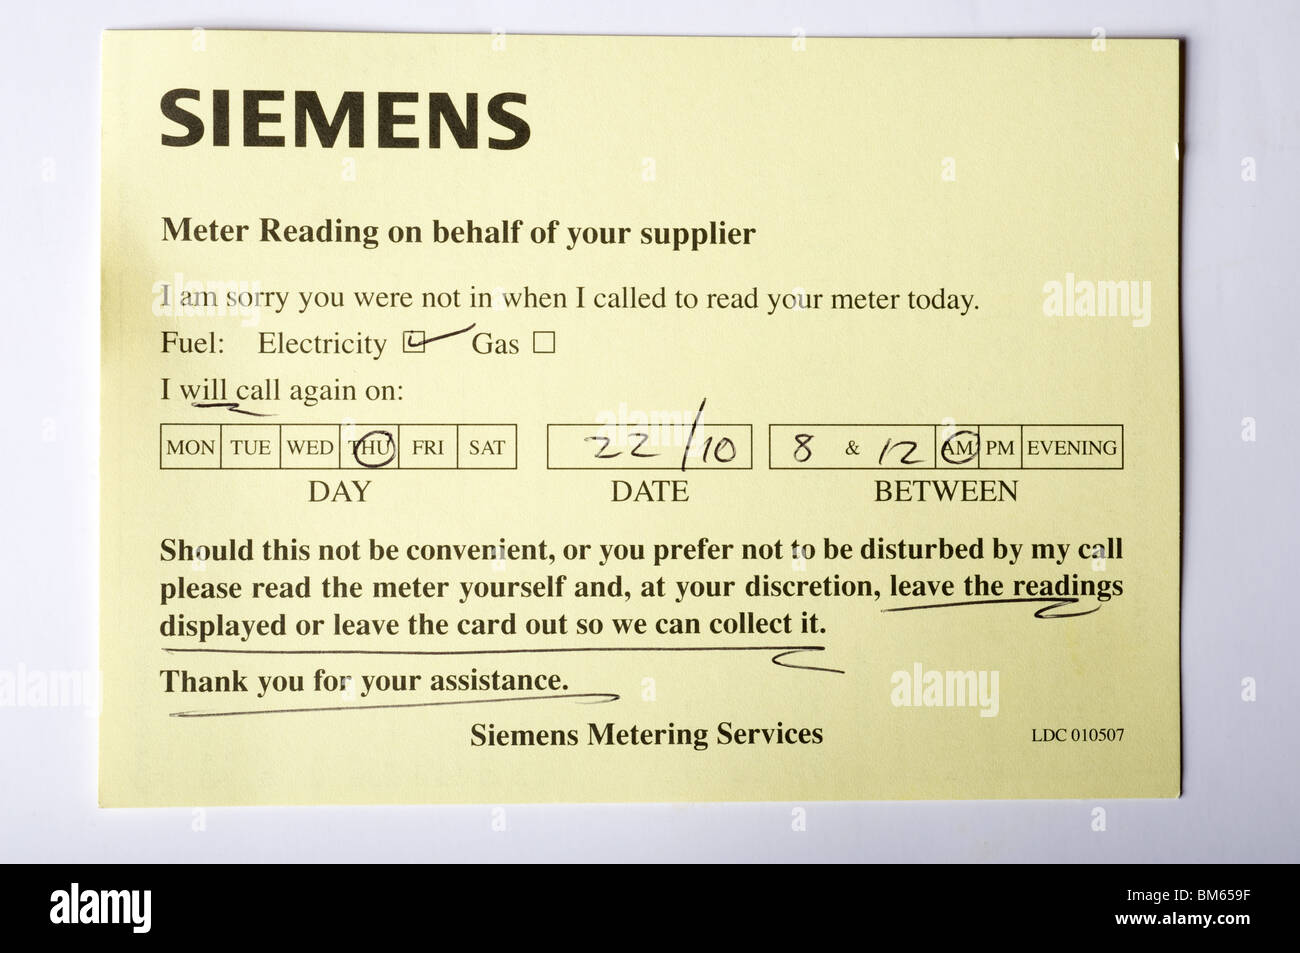 Siemens electricity meter reading card which is left at a customers house if they were not in at the time. - Stock Image